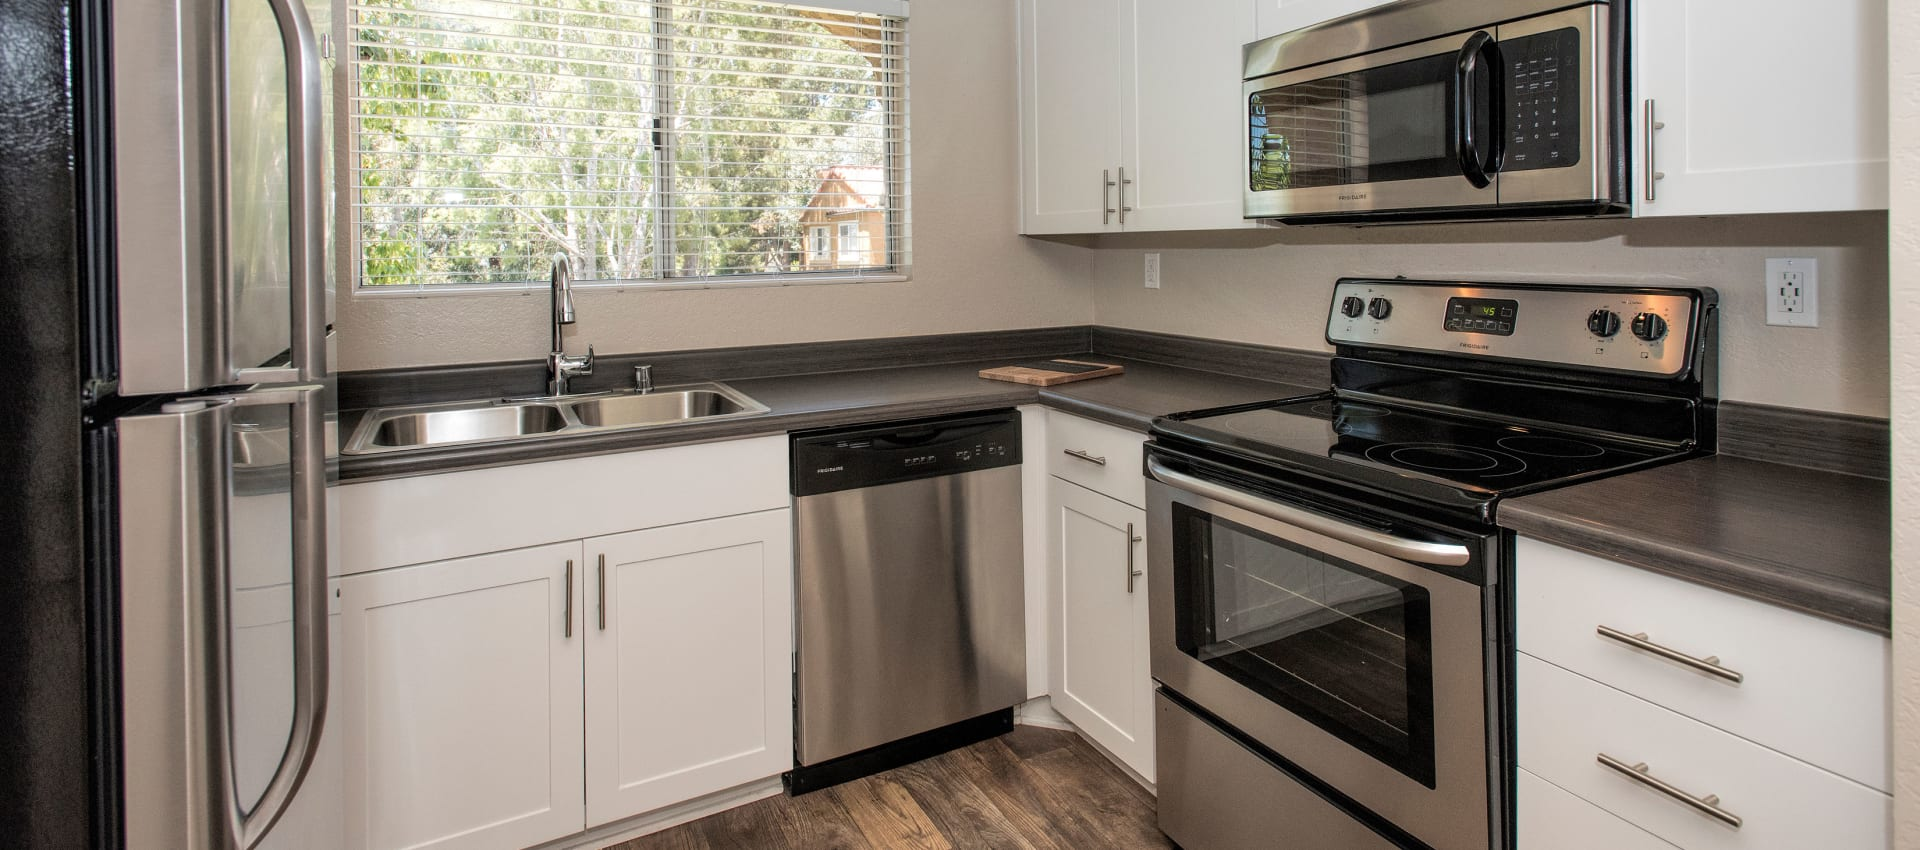 Beautiful kitchen at Hidden Hills Condominium Rentals in Laguna Niguel, California